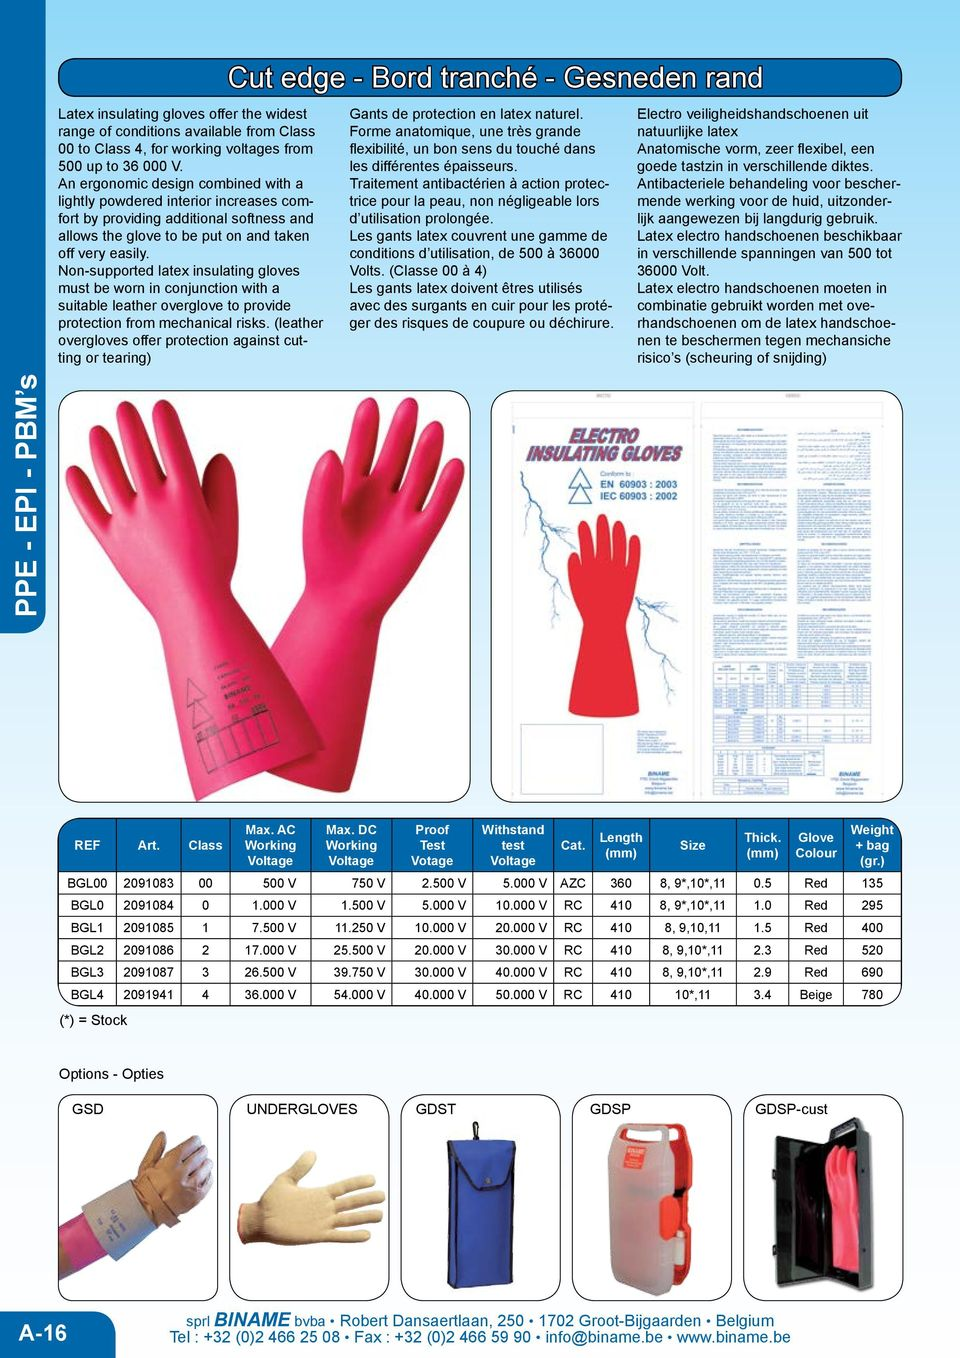 Non-supported latex insulating gloves must be worn in conjunction with a suitable leather overglove to provide protection from mechanical risks.